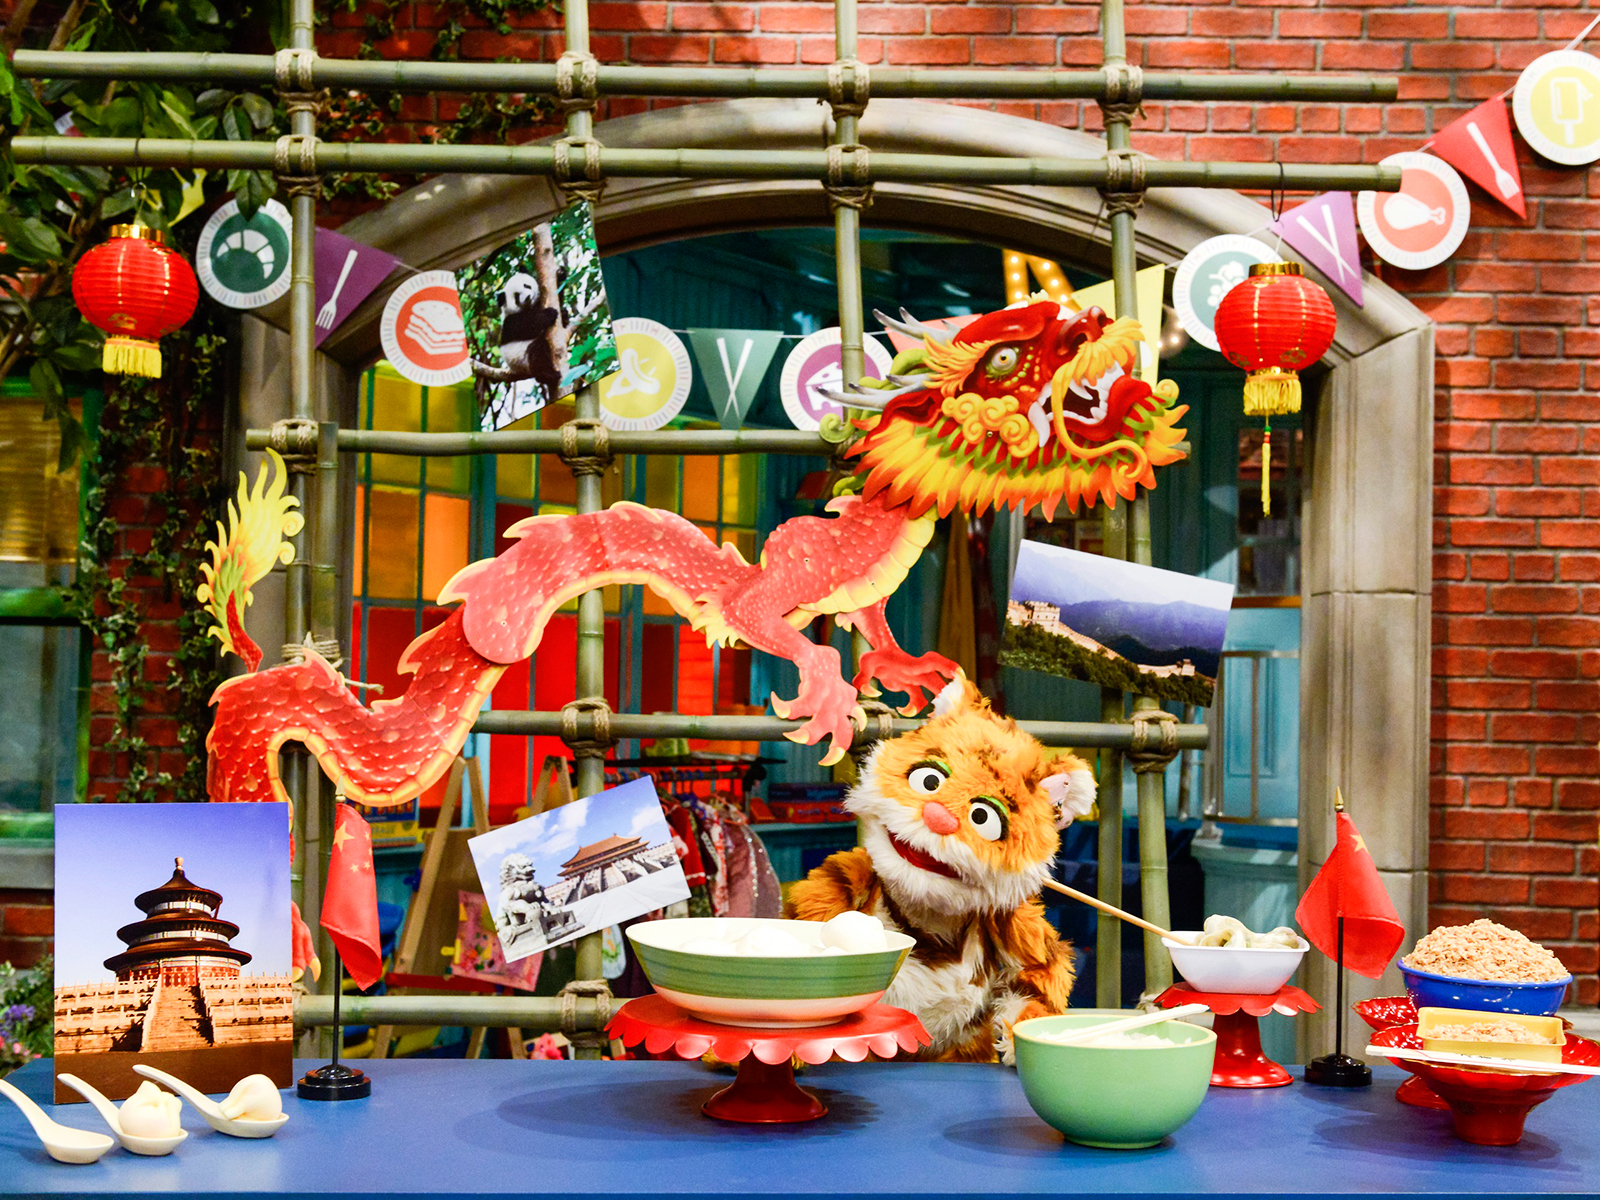 new episode of sesame street about street food